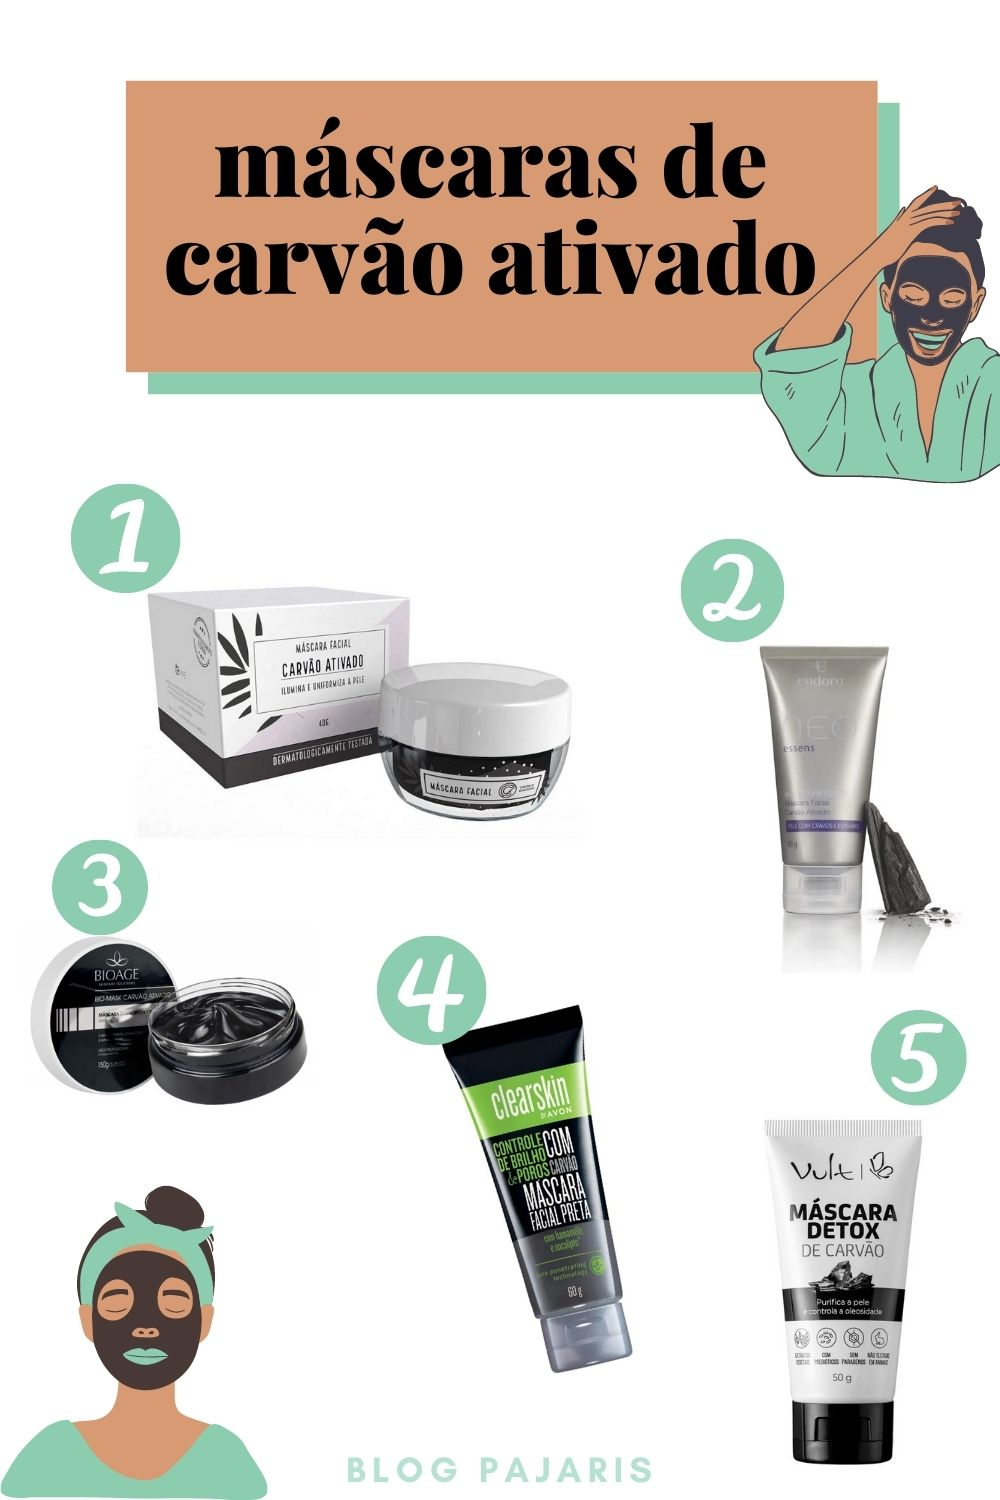 activated carbon mask (1)